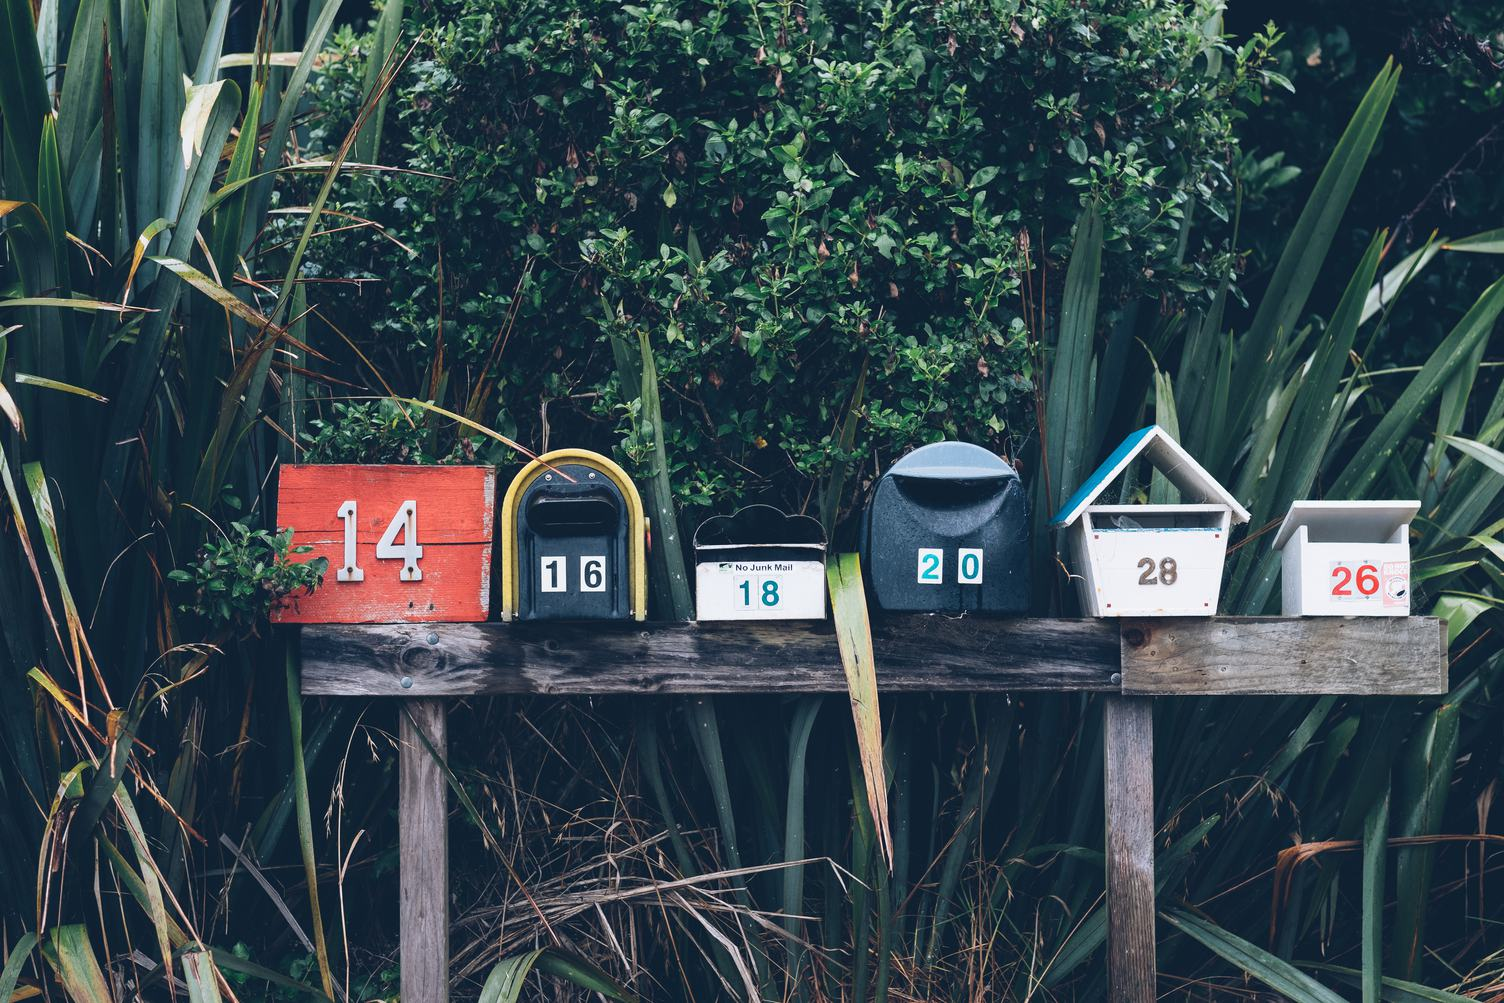 Six Various Mailboxes Different Colors and Shapes